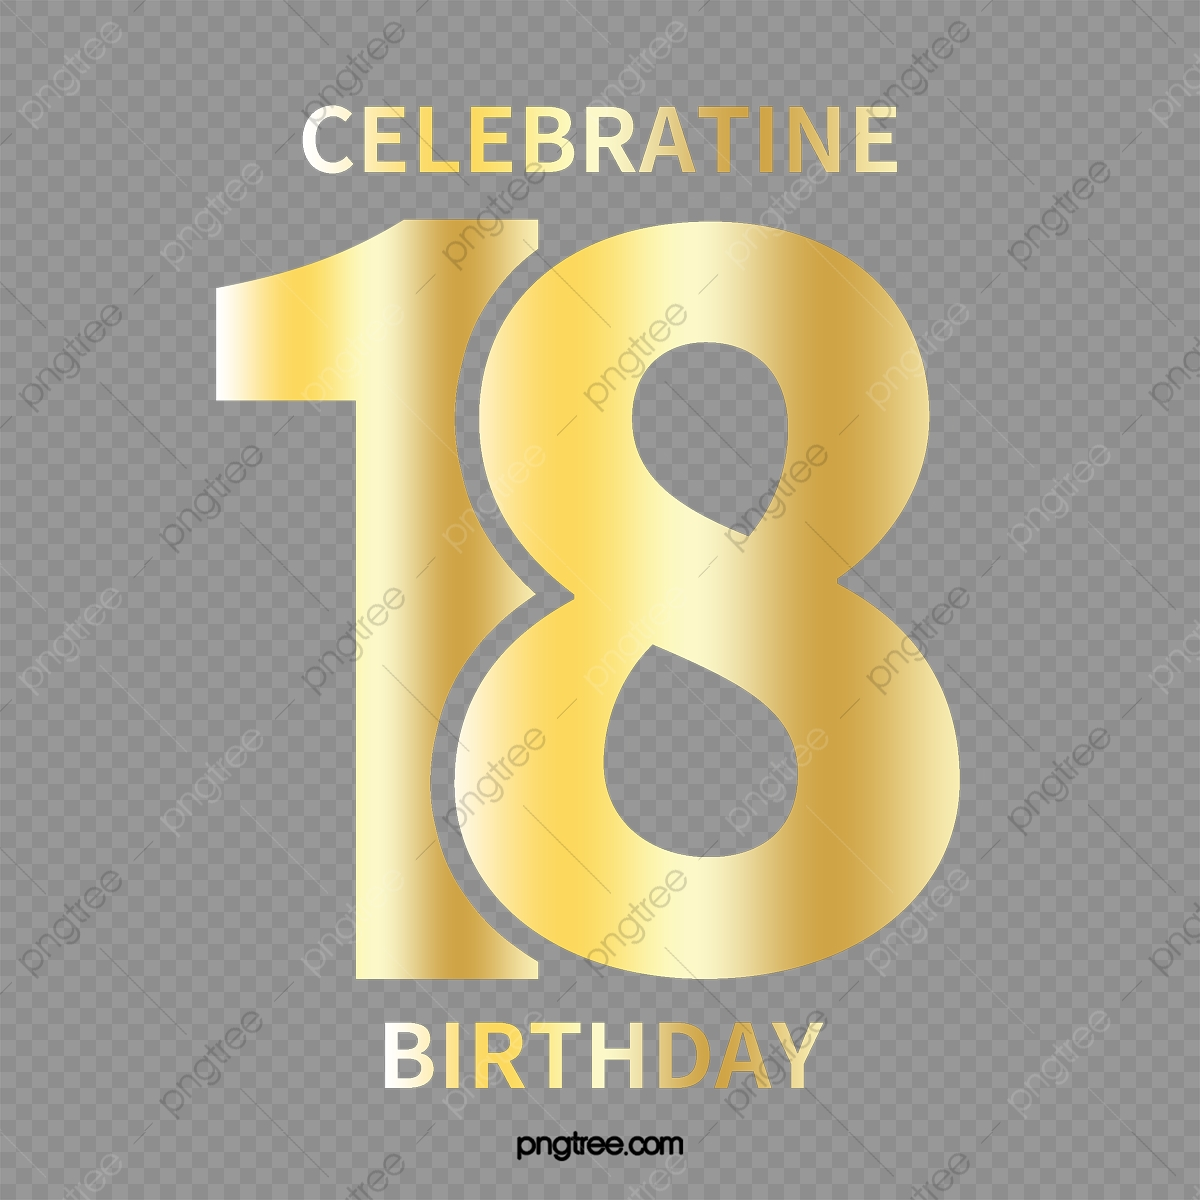 Gold 18th Birthday Happy, Birthday Clipart, Vector Material, Adult.